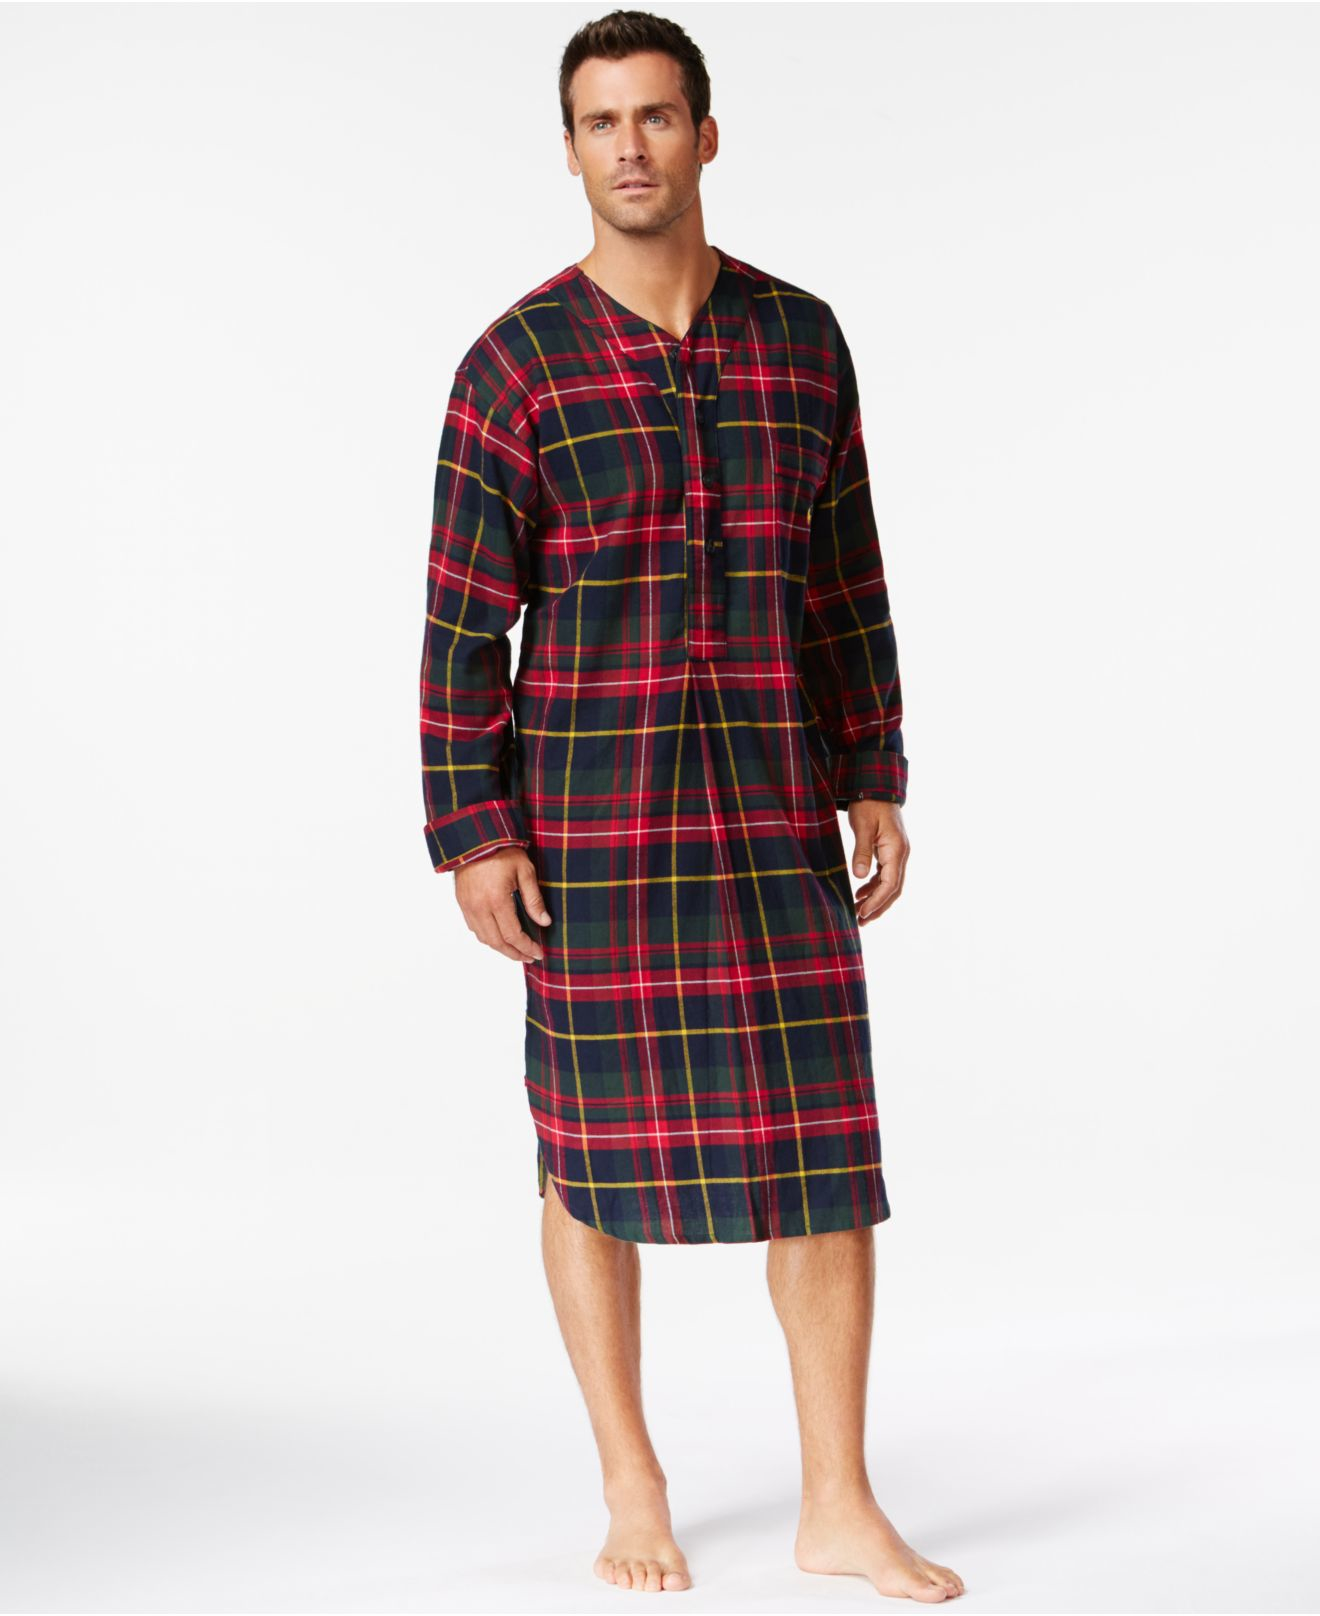 Enjoy the tradition of red flannel dropseater longjohns at the Red Flannel Factory! Pajamas and undergarments for the whole family that are USA hand-made and customizable. Great gifts for your loved ones. Easy shopping online.